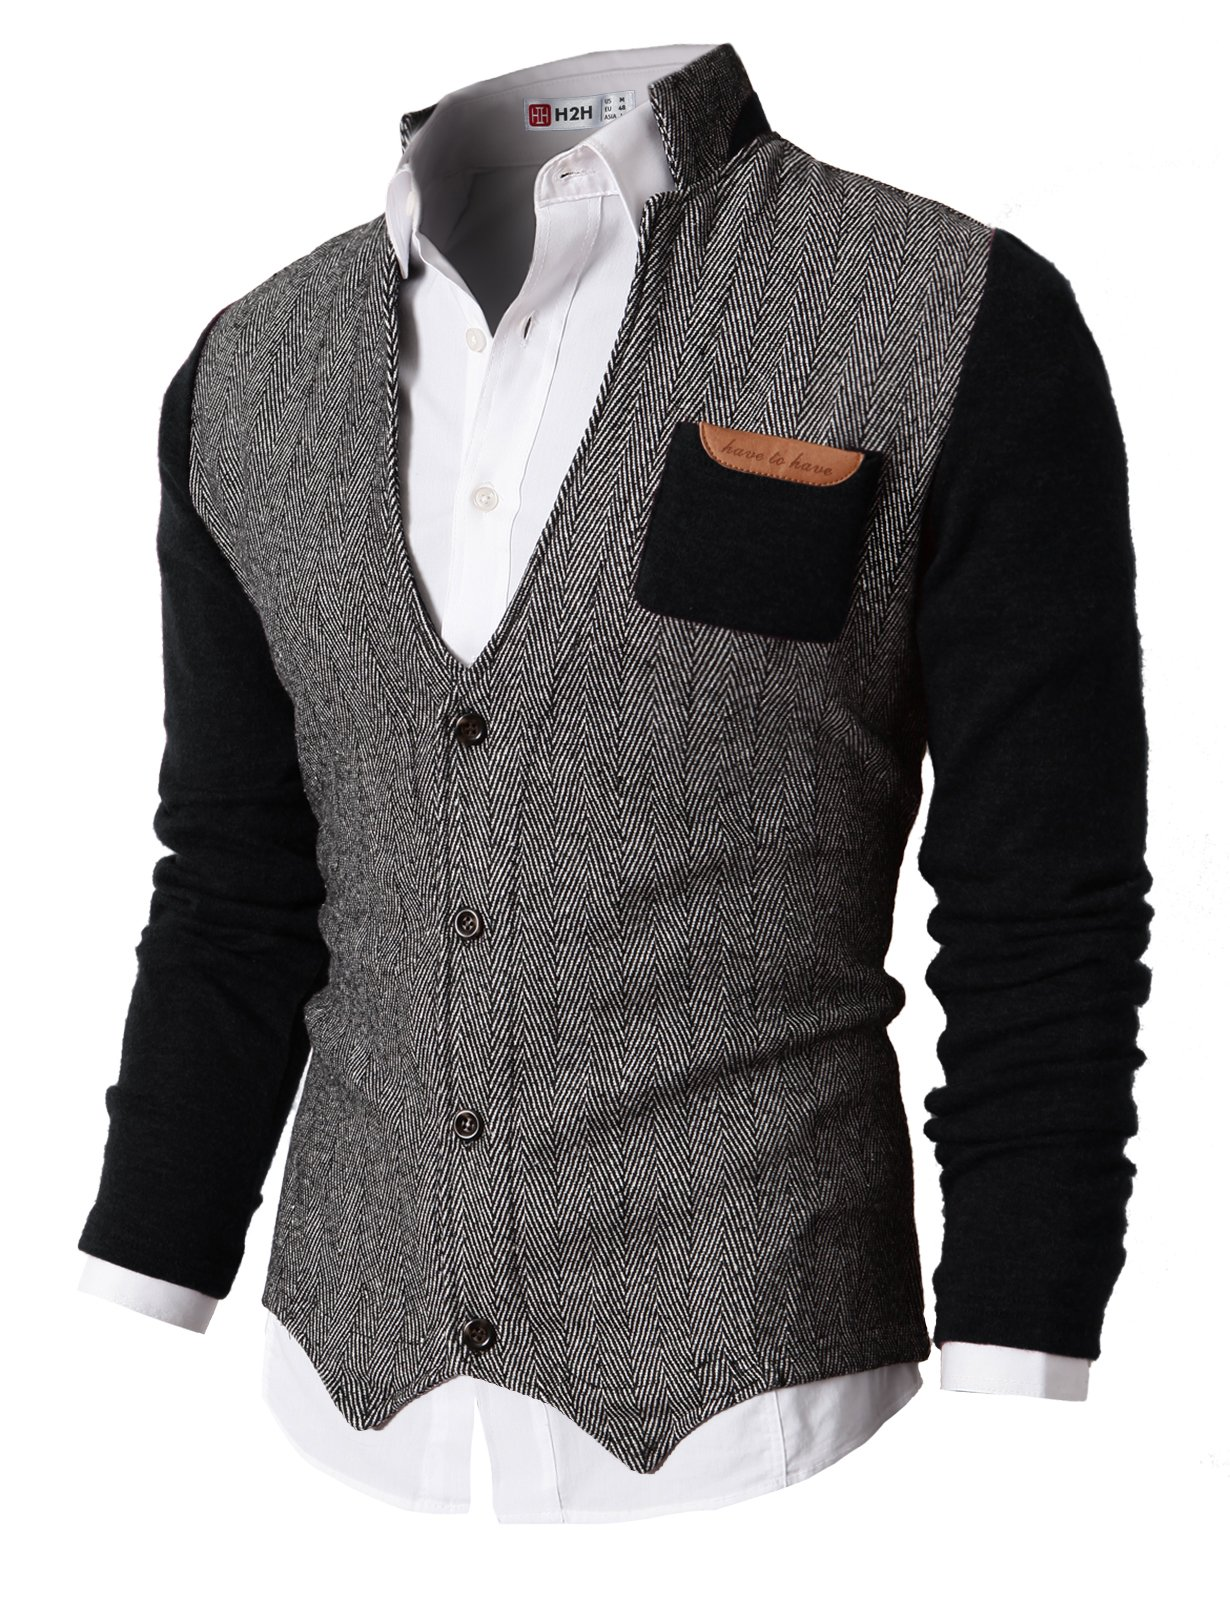 H2H Men's Autumn Winter Knit Thick Cardigan Sweater Knitwear With Hood Black US 2XL/Asia 3XL (KMOSWL015)